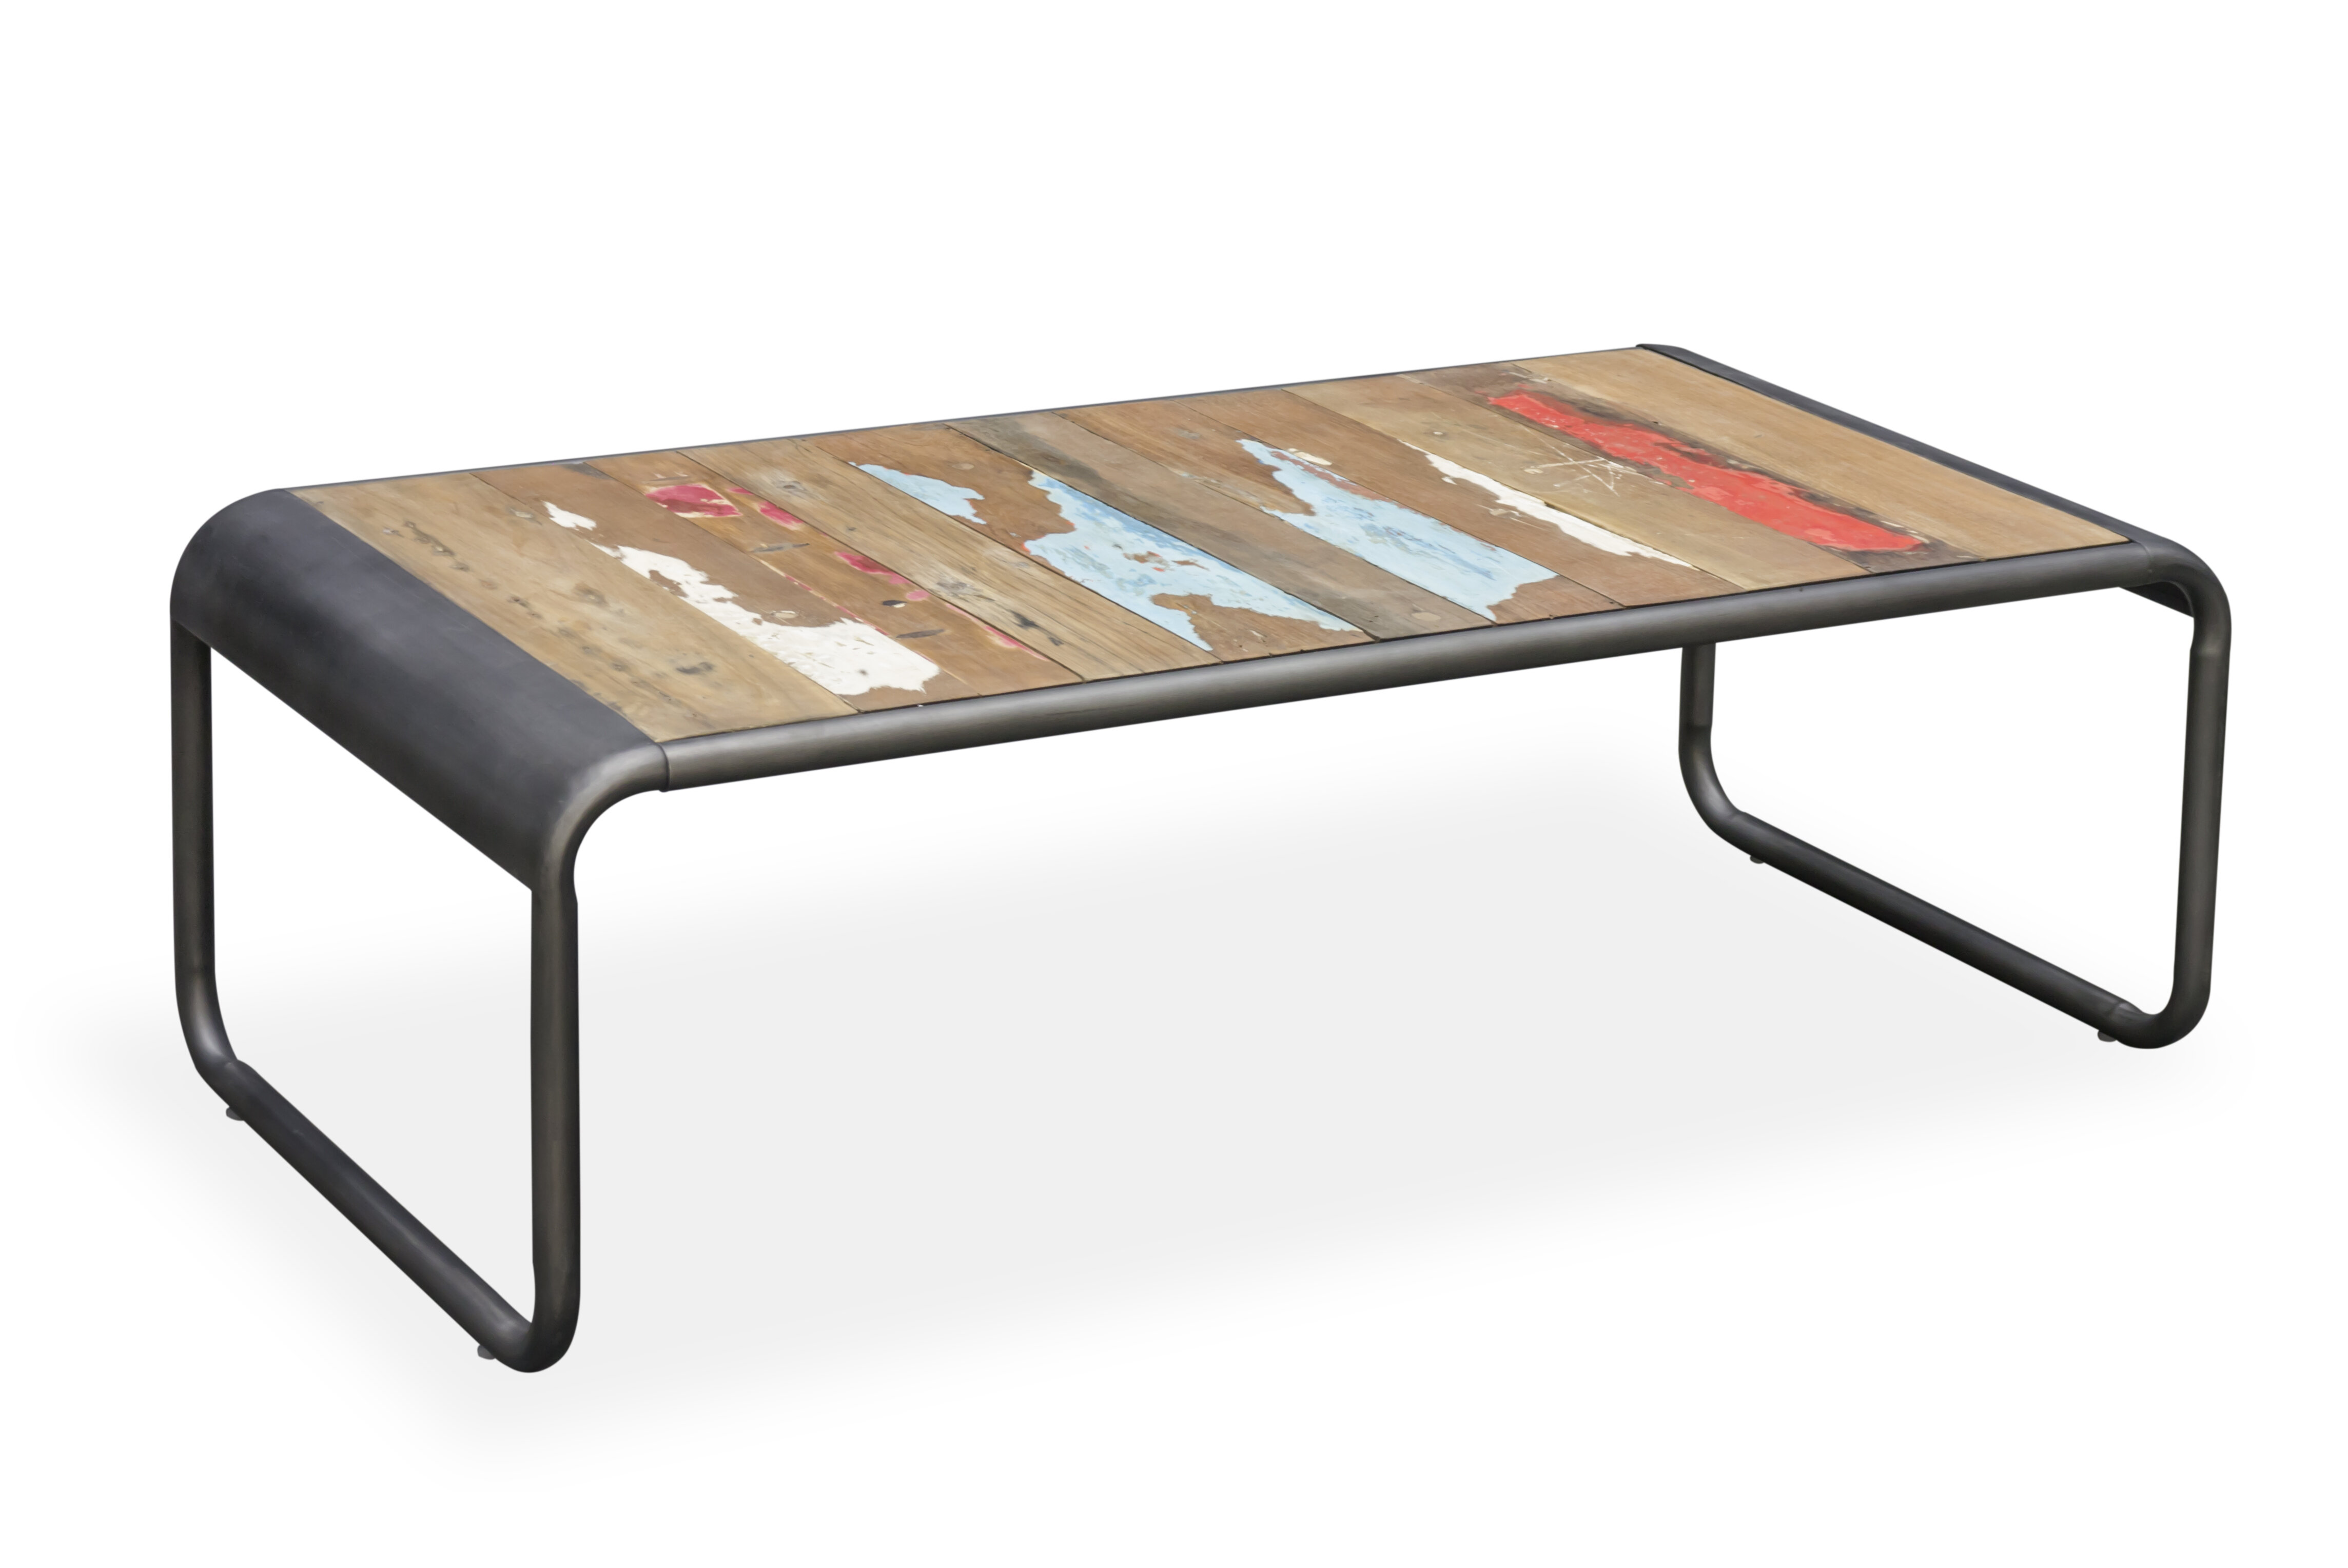 Williston Forge Chaunte Recycled Boat Coffee Table | Wayfair.co.uk